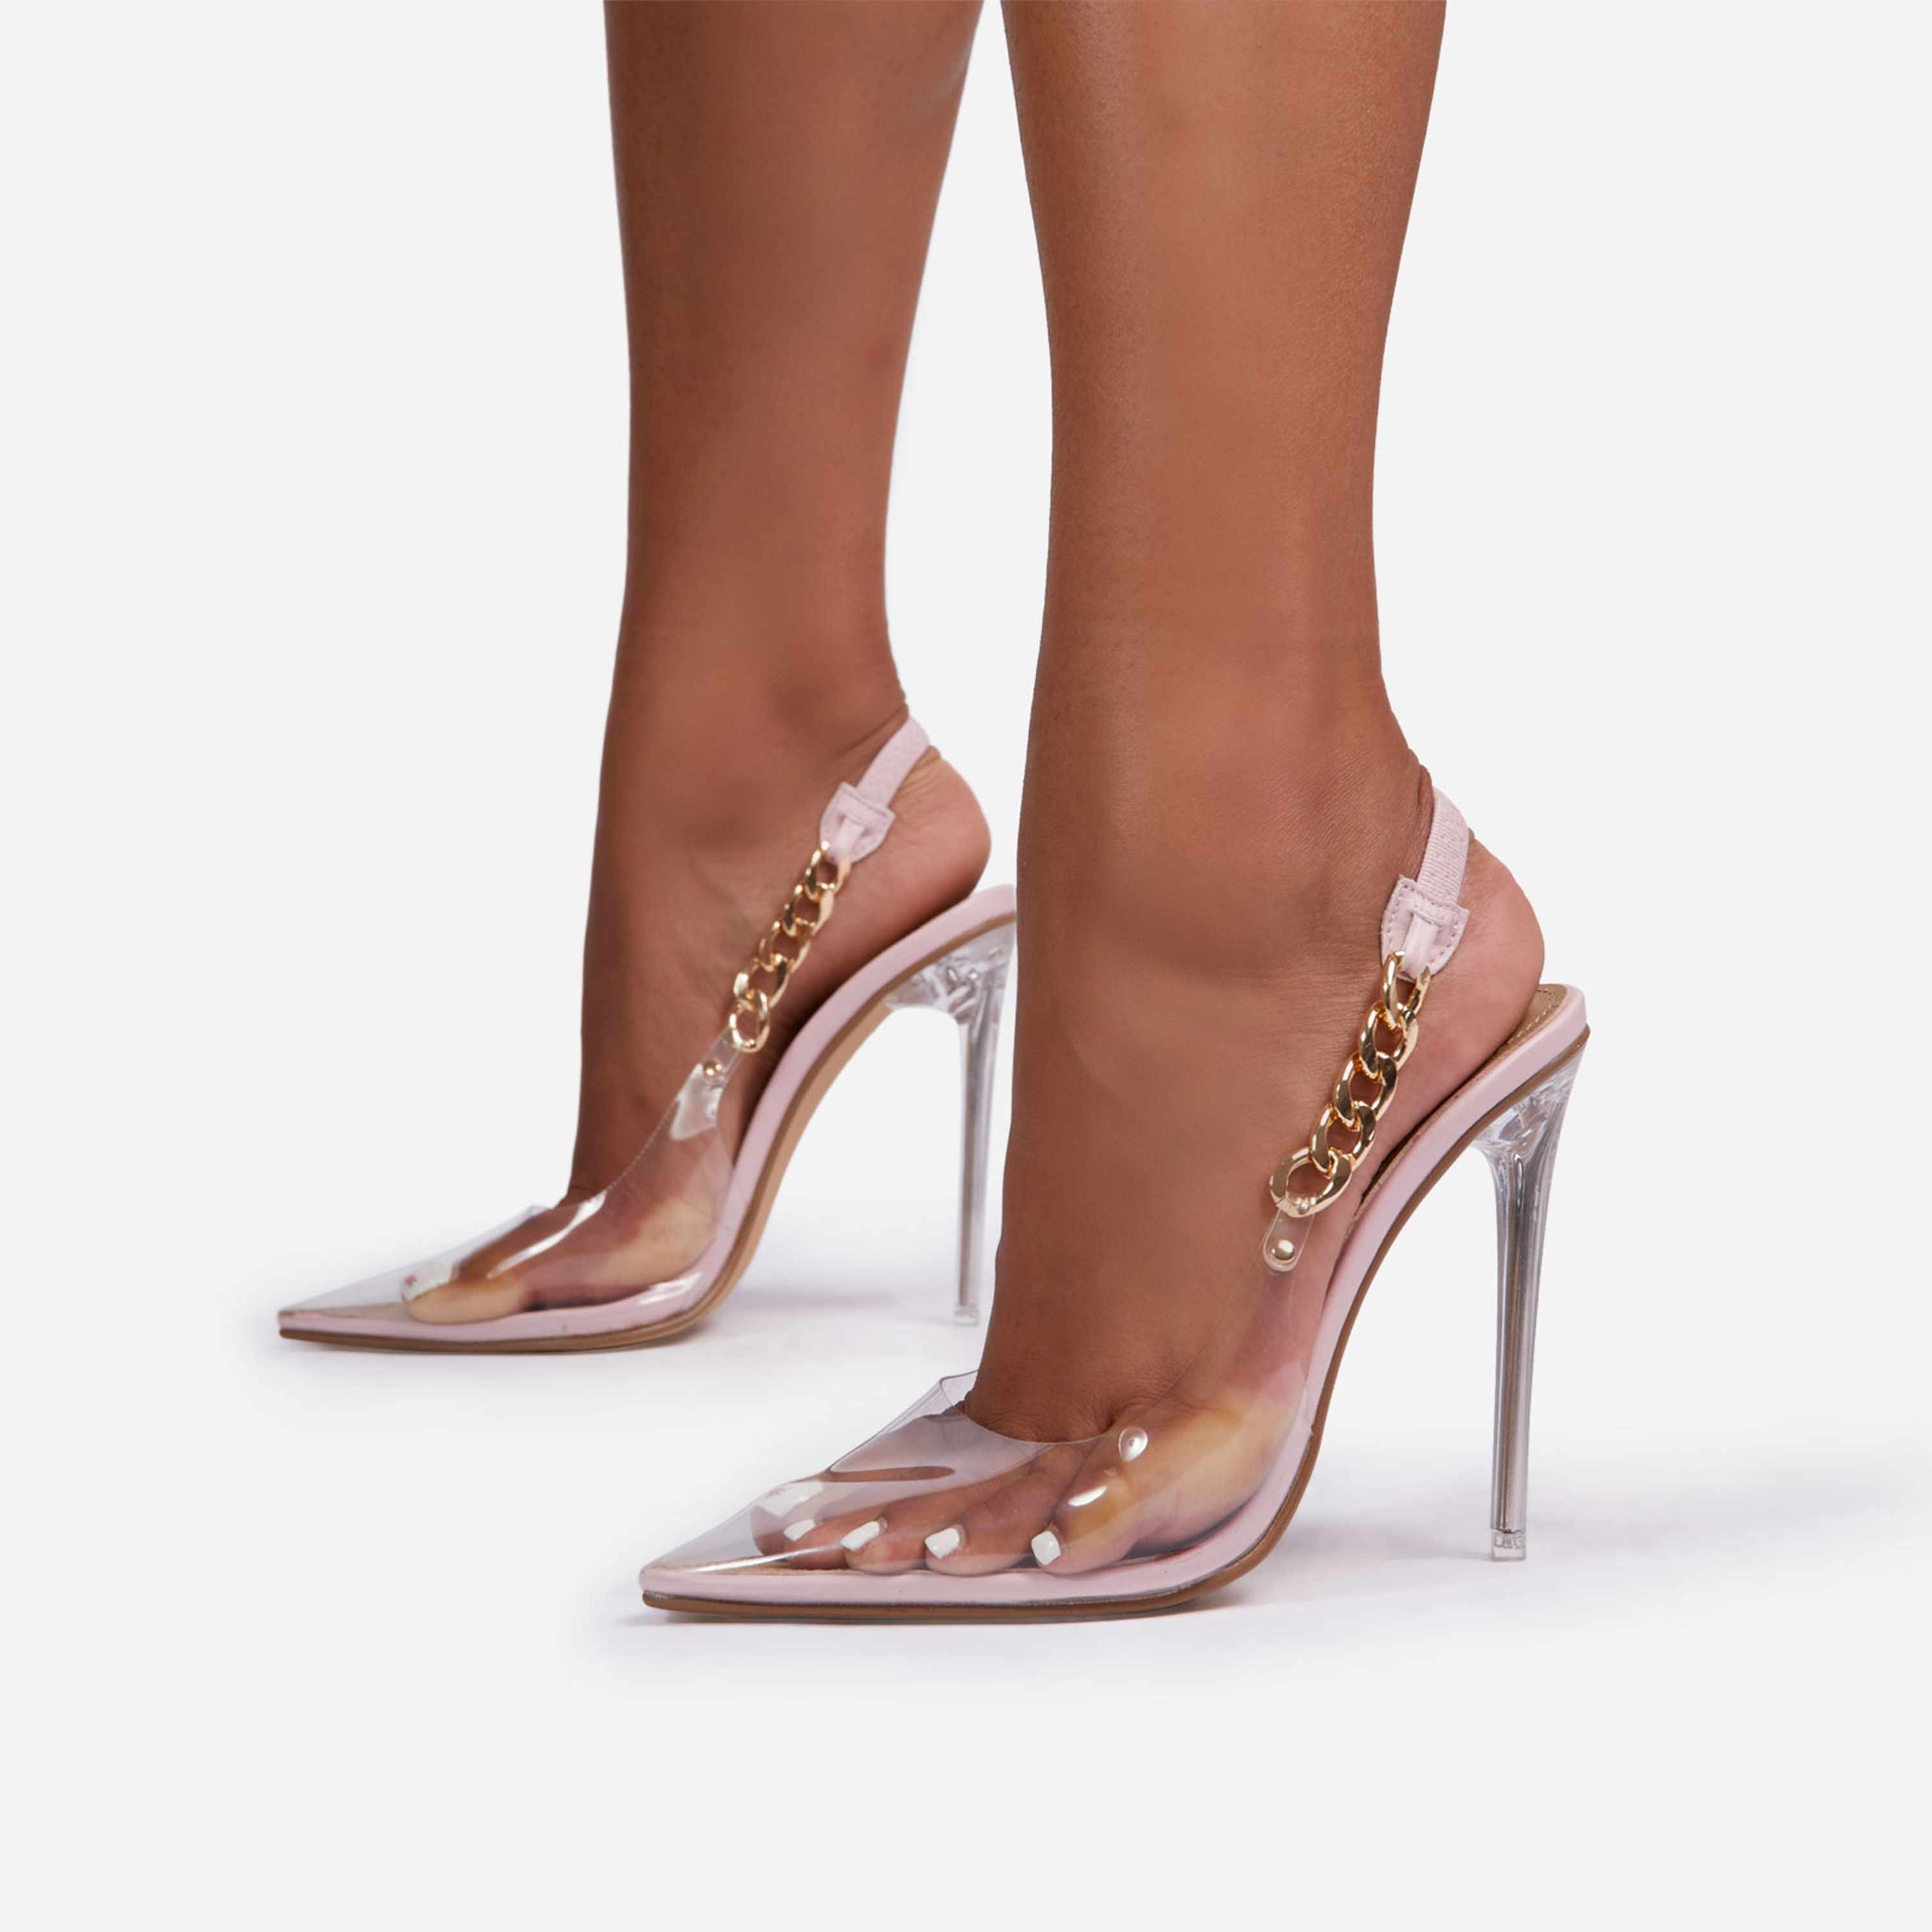 Martini Chunky Chain Detail Sling Back Clear Perspex Heel In Pink Faux Leather